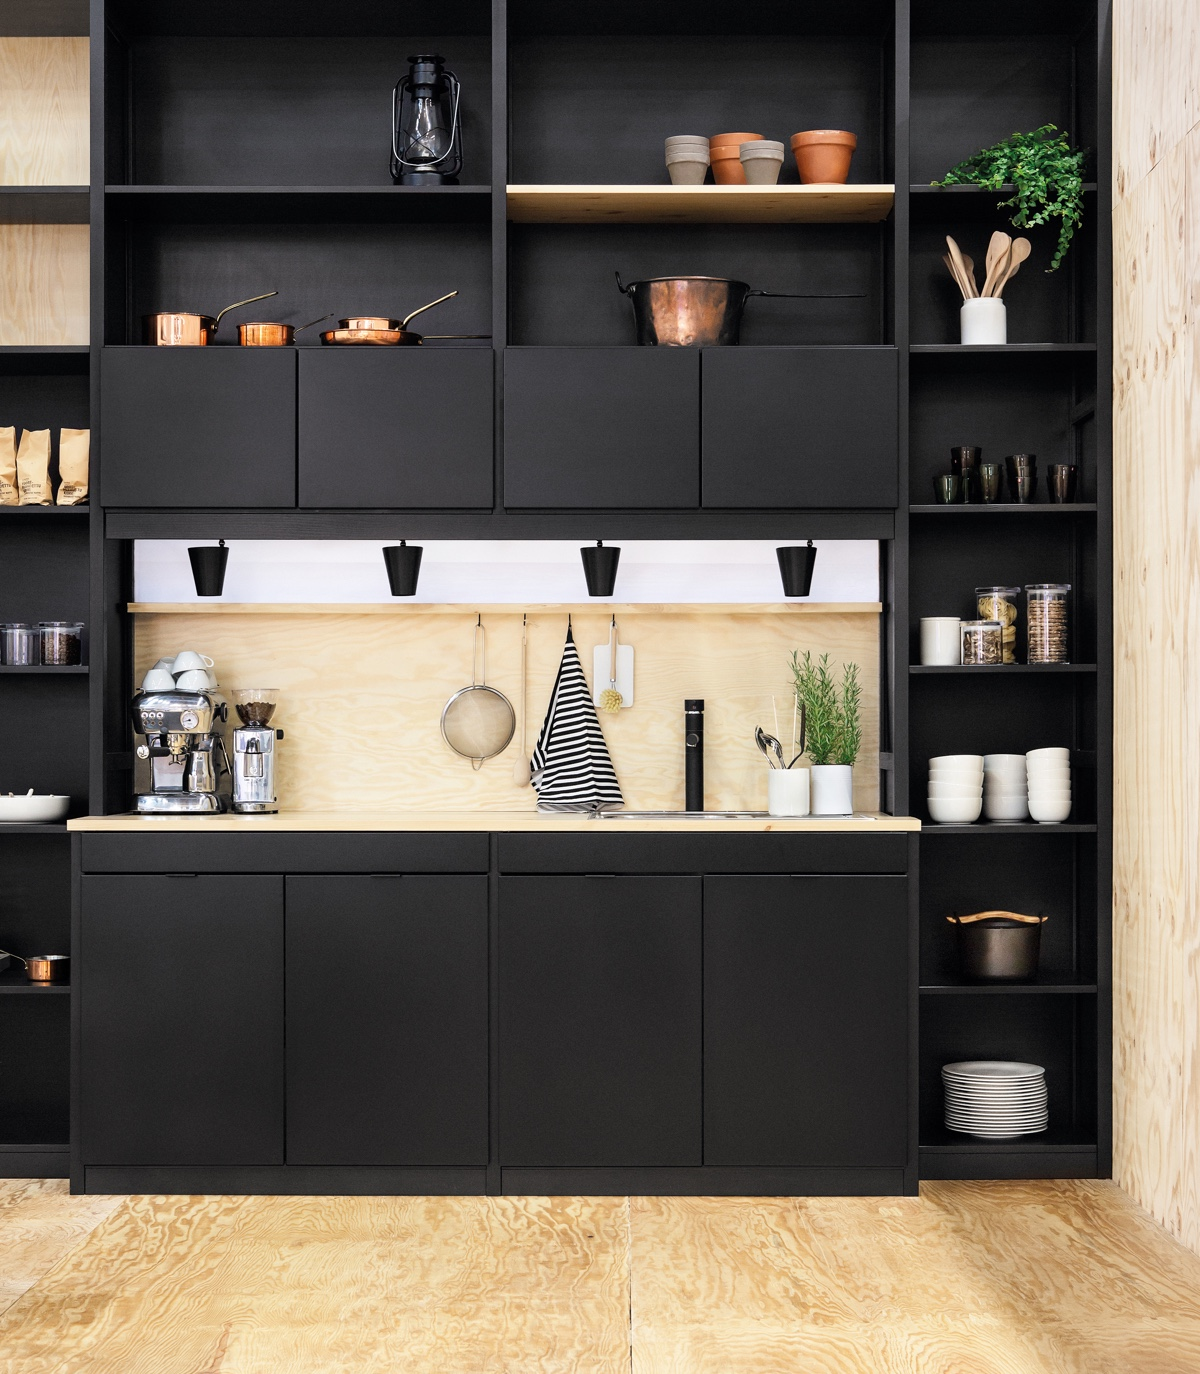 Black-bookcase-kitchen-compartmentalised-elements